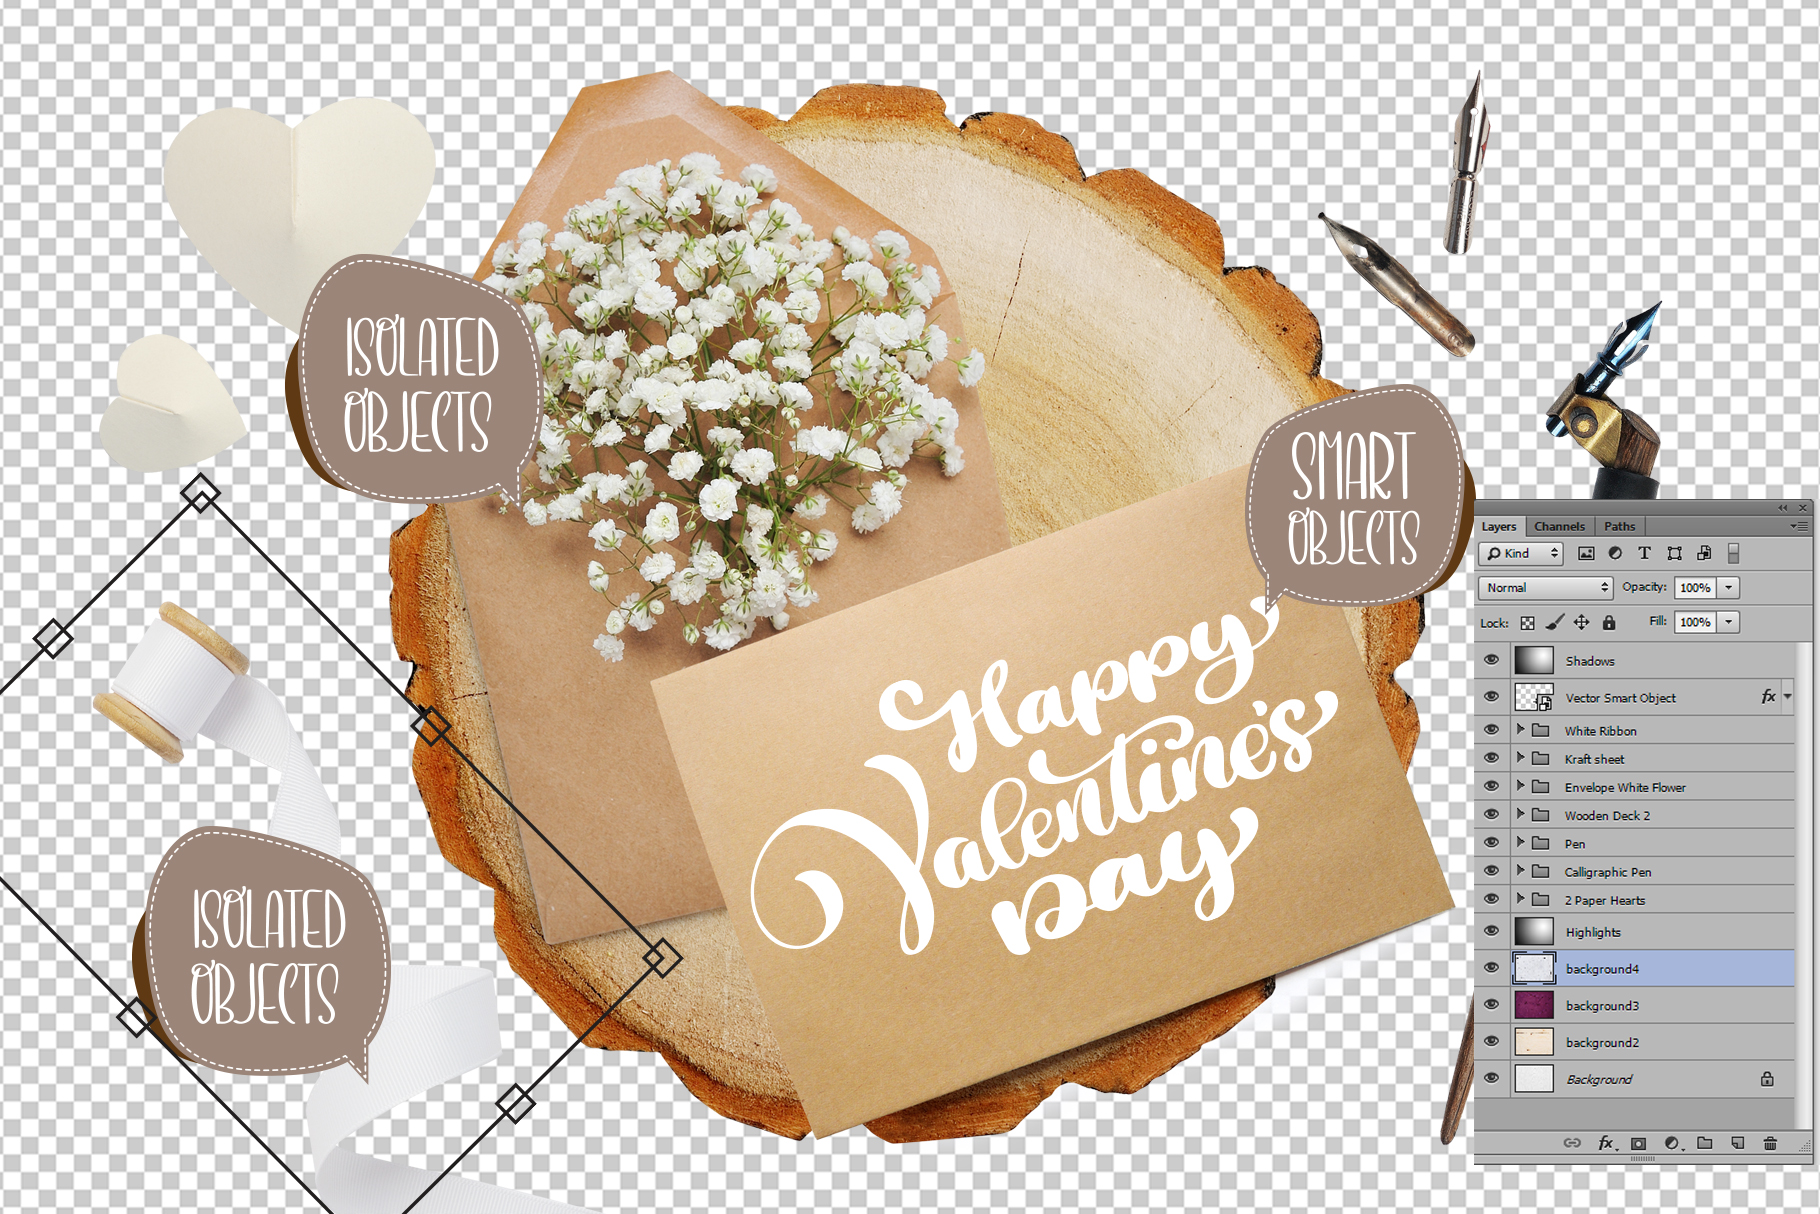 Valentines Day PSD Layered Scene Graphic Product Mockups By Happy Letters - Image 2